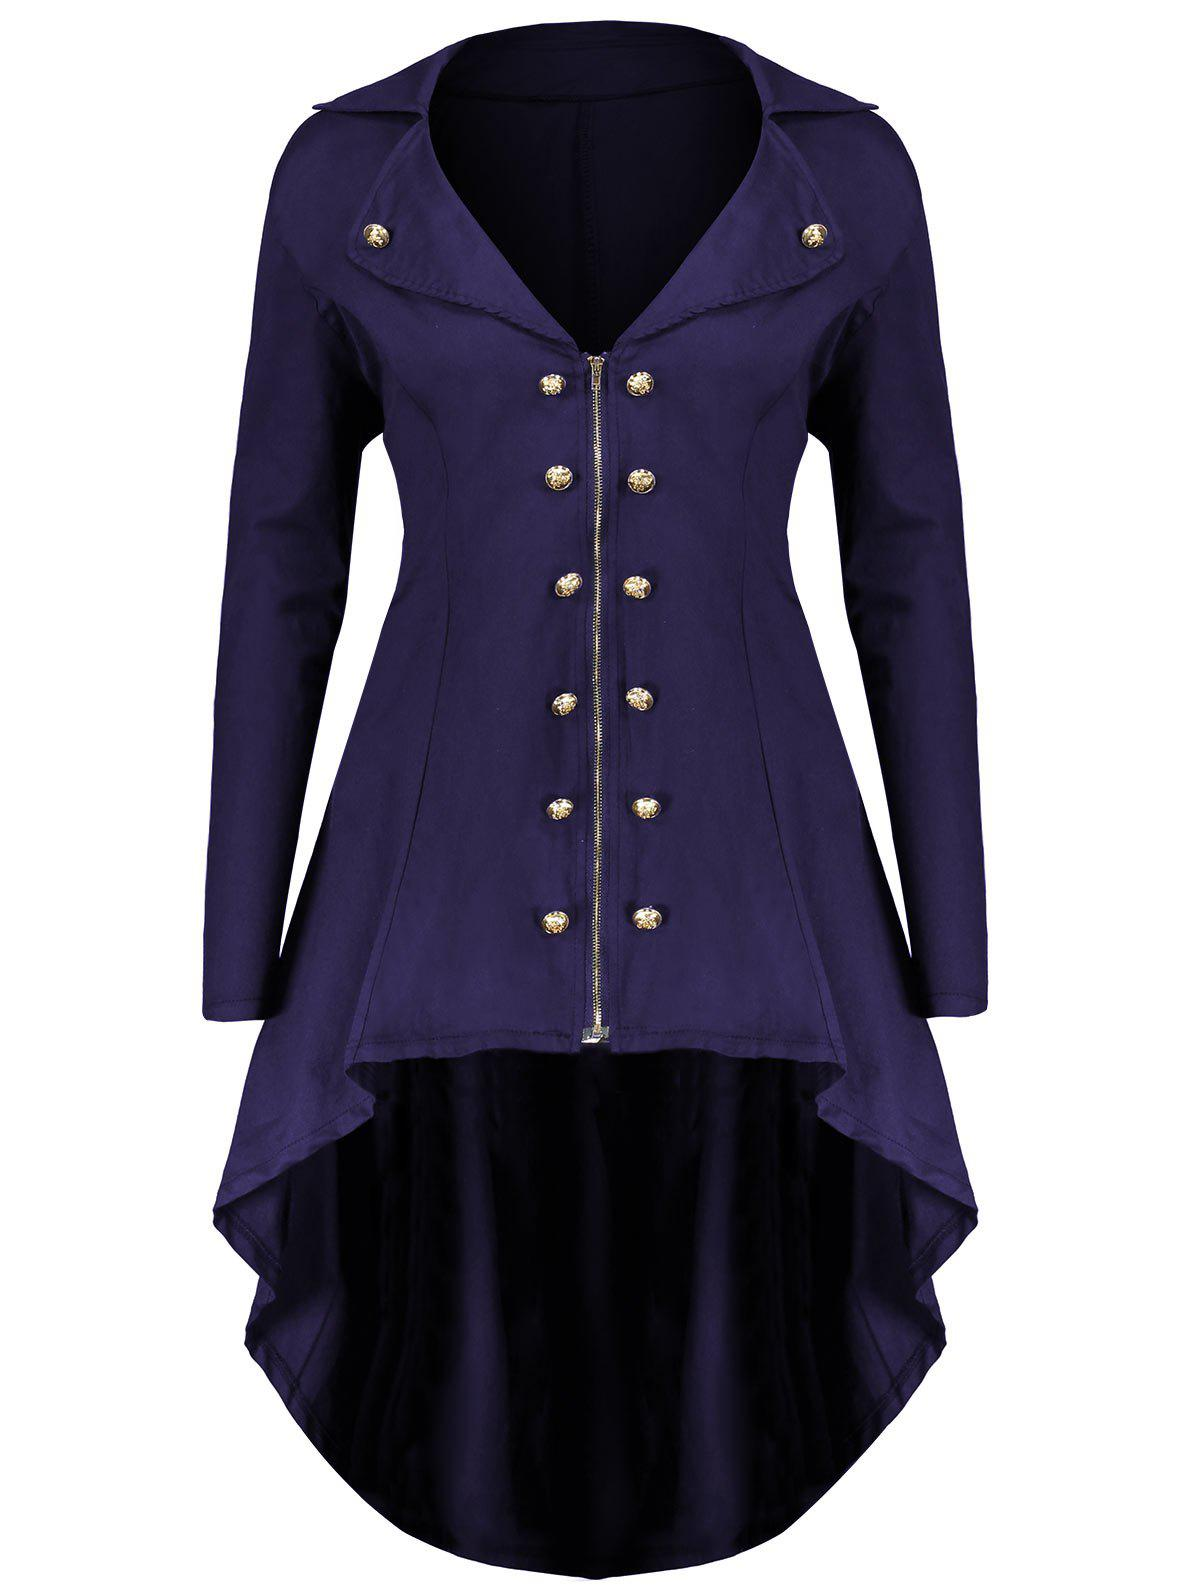 Lapel Double Breast Plus Size High Low CoatWOMEN<br><br>Size: 3XL; Color: PURPLE; Clothes Type: Others; Material: Polyester,Spandex; Type: Asymmetric Length; Shirt Length: Long; Sleeve Length: Full; Collar: Lapel; Pattern Type: Solid; Embellishment: Button,Zippers; Style: Fashion; Season: Fall,Winter; Weight: 0.5200kg; Package Contents: 1 x Coat;